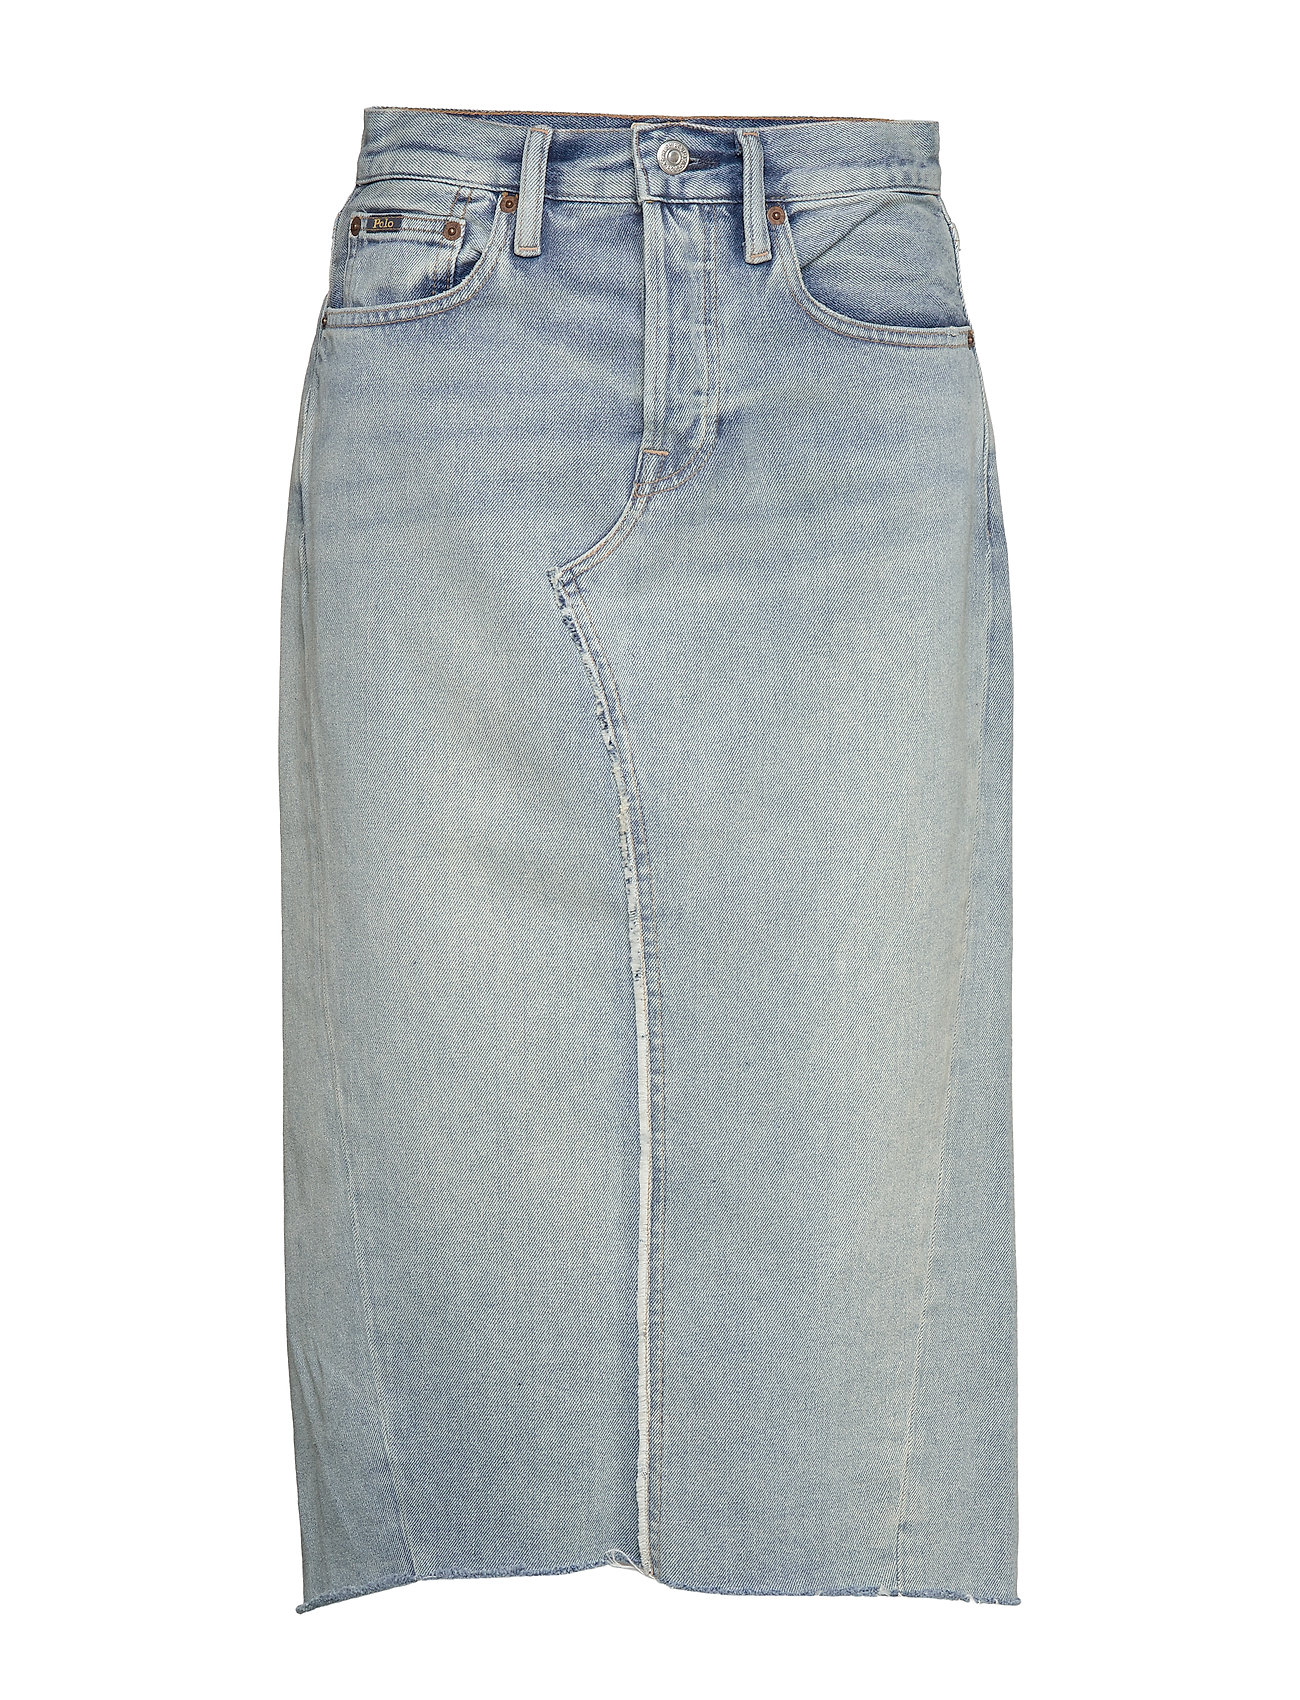 Polo Ralph Lauren Denim Skirt - LIGHT INDIGO